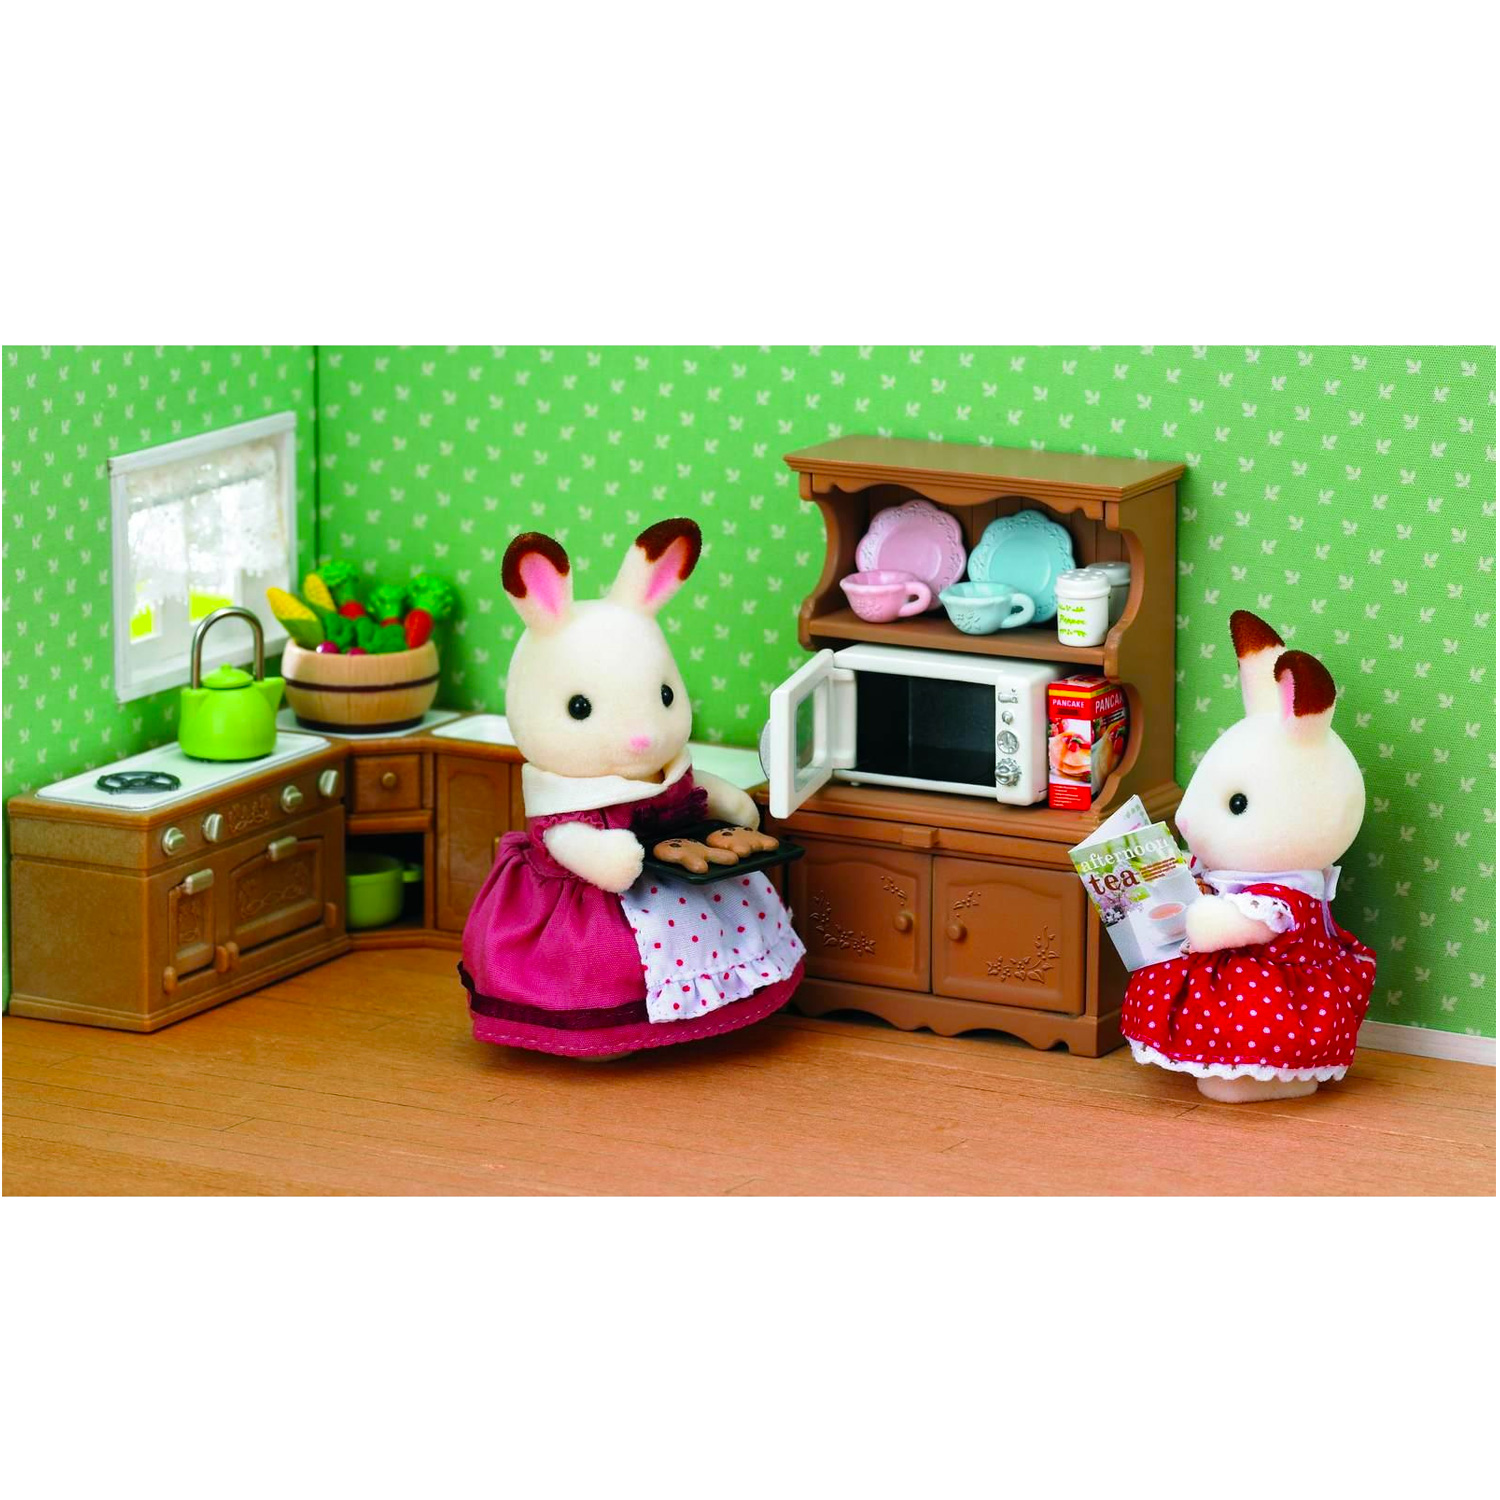 sylvanian family 3561 ensemble cuisine et four ebay. Black Bedroom Furniture Sets. Home Design Ideas